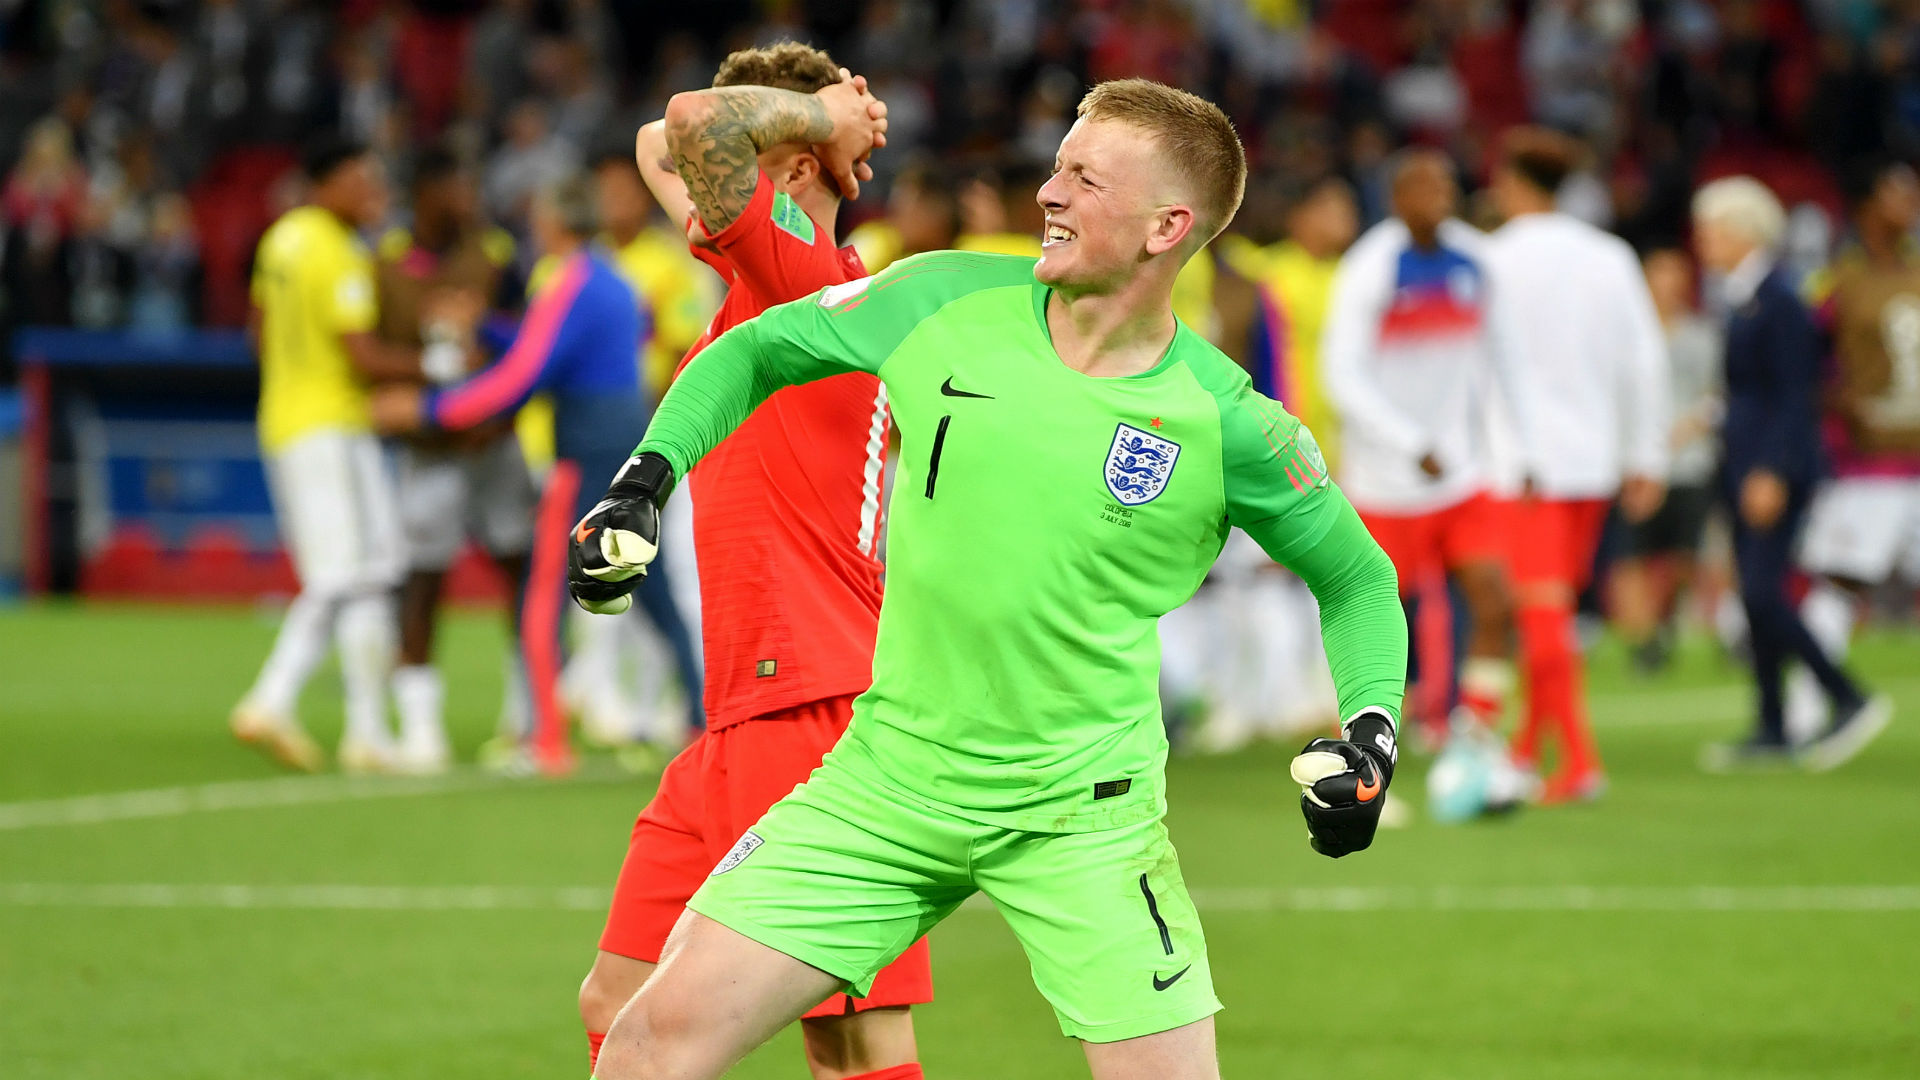 England World Cup Penalty Win   I don t care if I m not the biggest     England World Cup Penalty Win   I don t care if I m not the biggest keeper     Pickford hits back at Courtois after heroics   Goal com